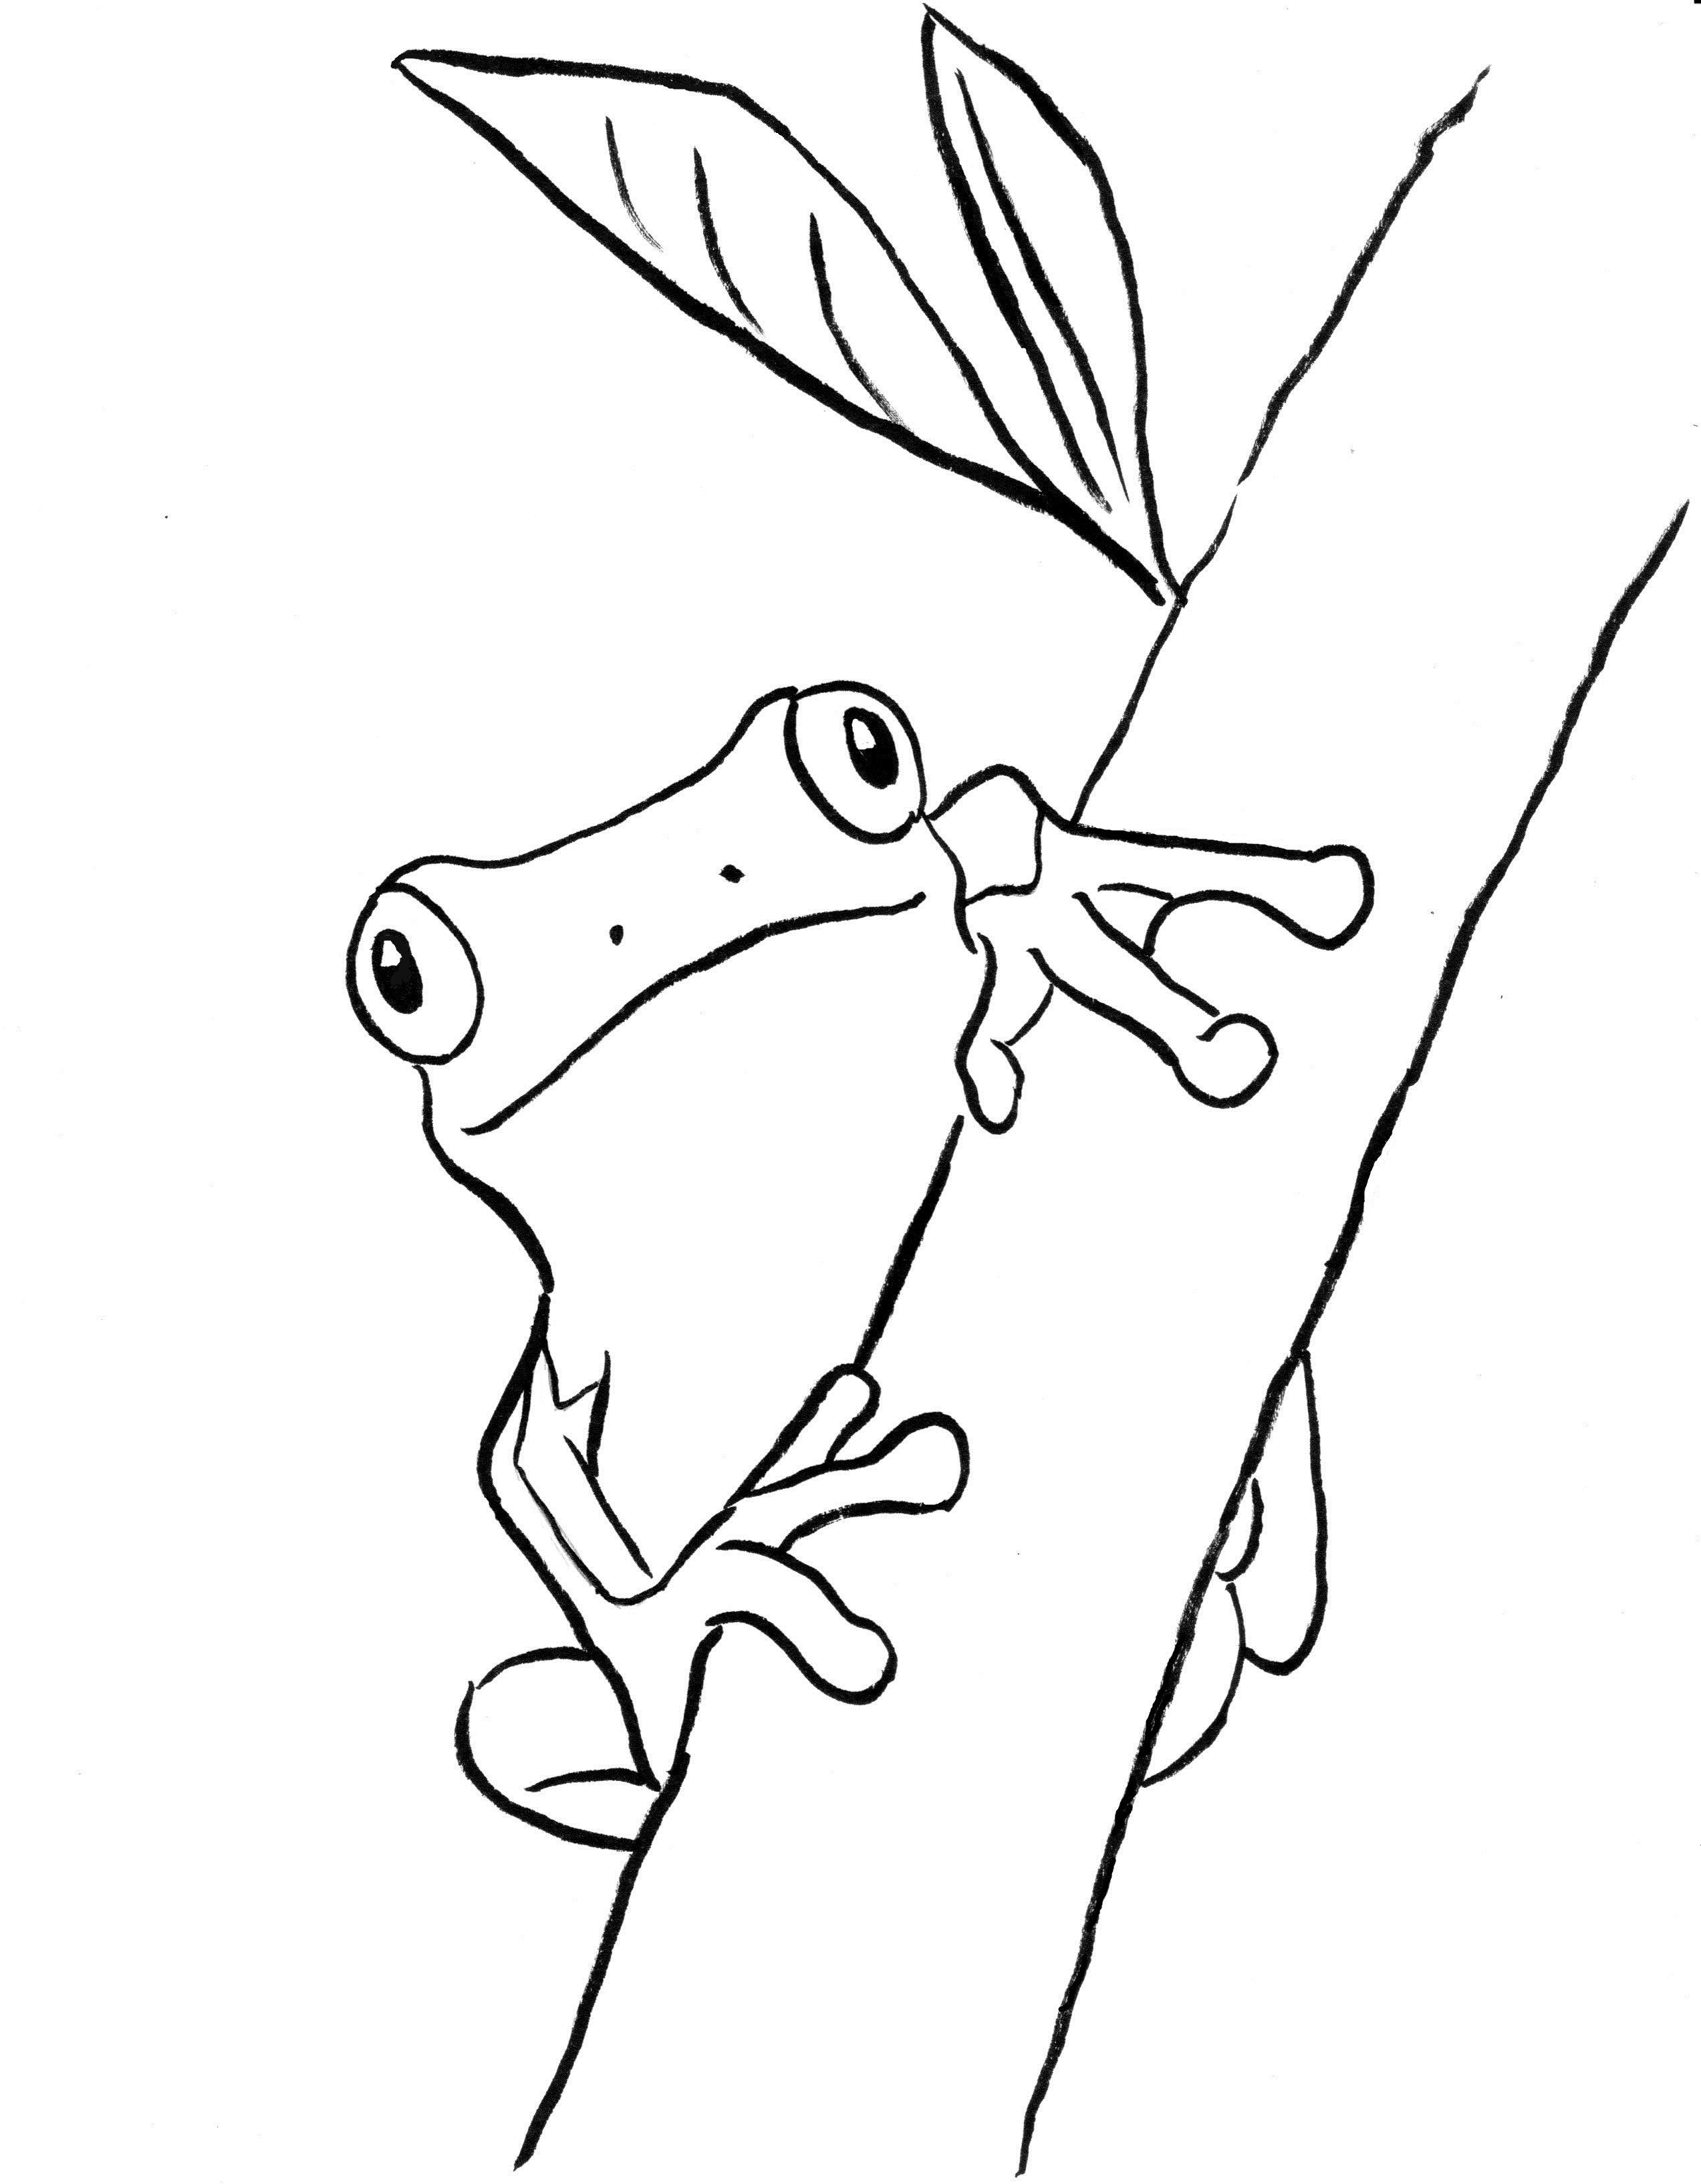 frog coloring sheets frogs coloring pages downloadable and printable collection sheets frog coloring